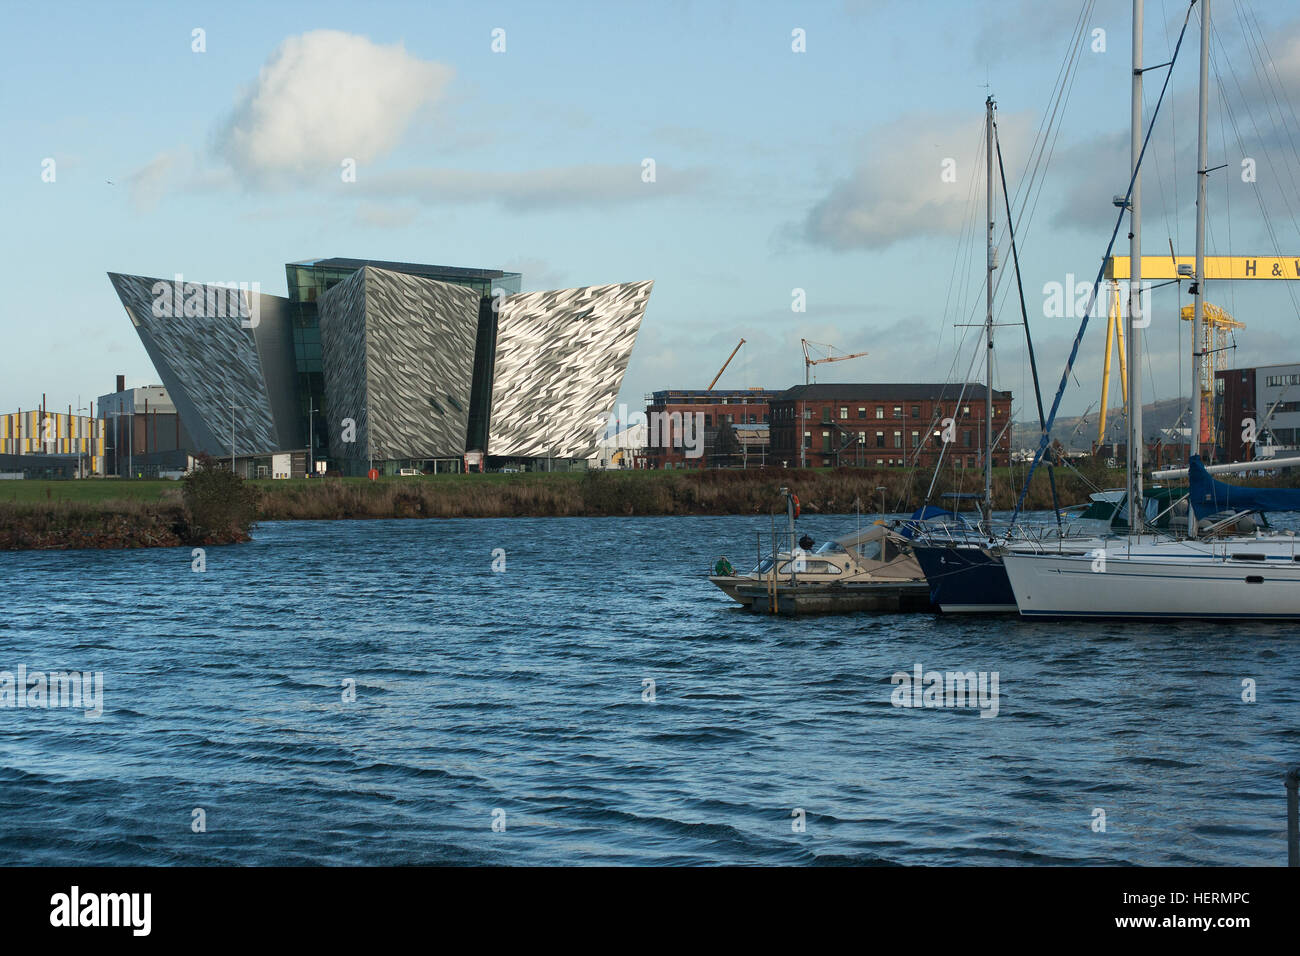 View across Belfast Harbor showing the iconic Titanic building built as part of the redevelopment of the harbor - Stock Image